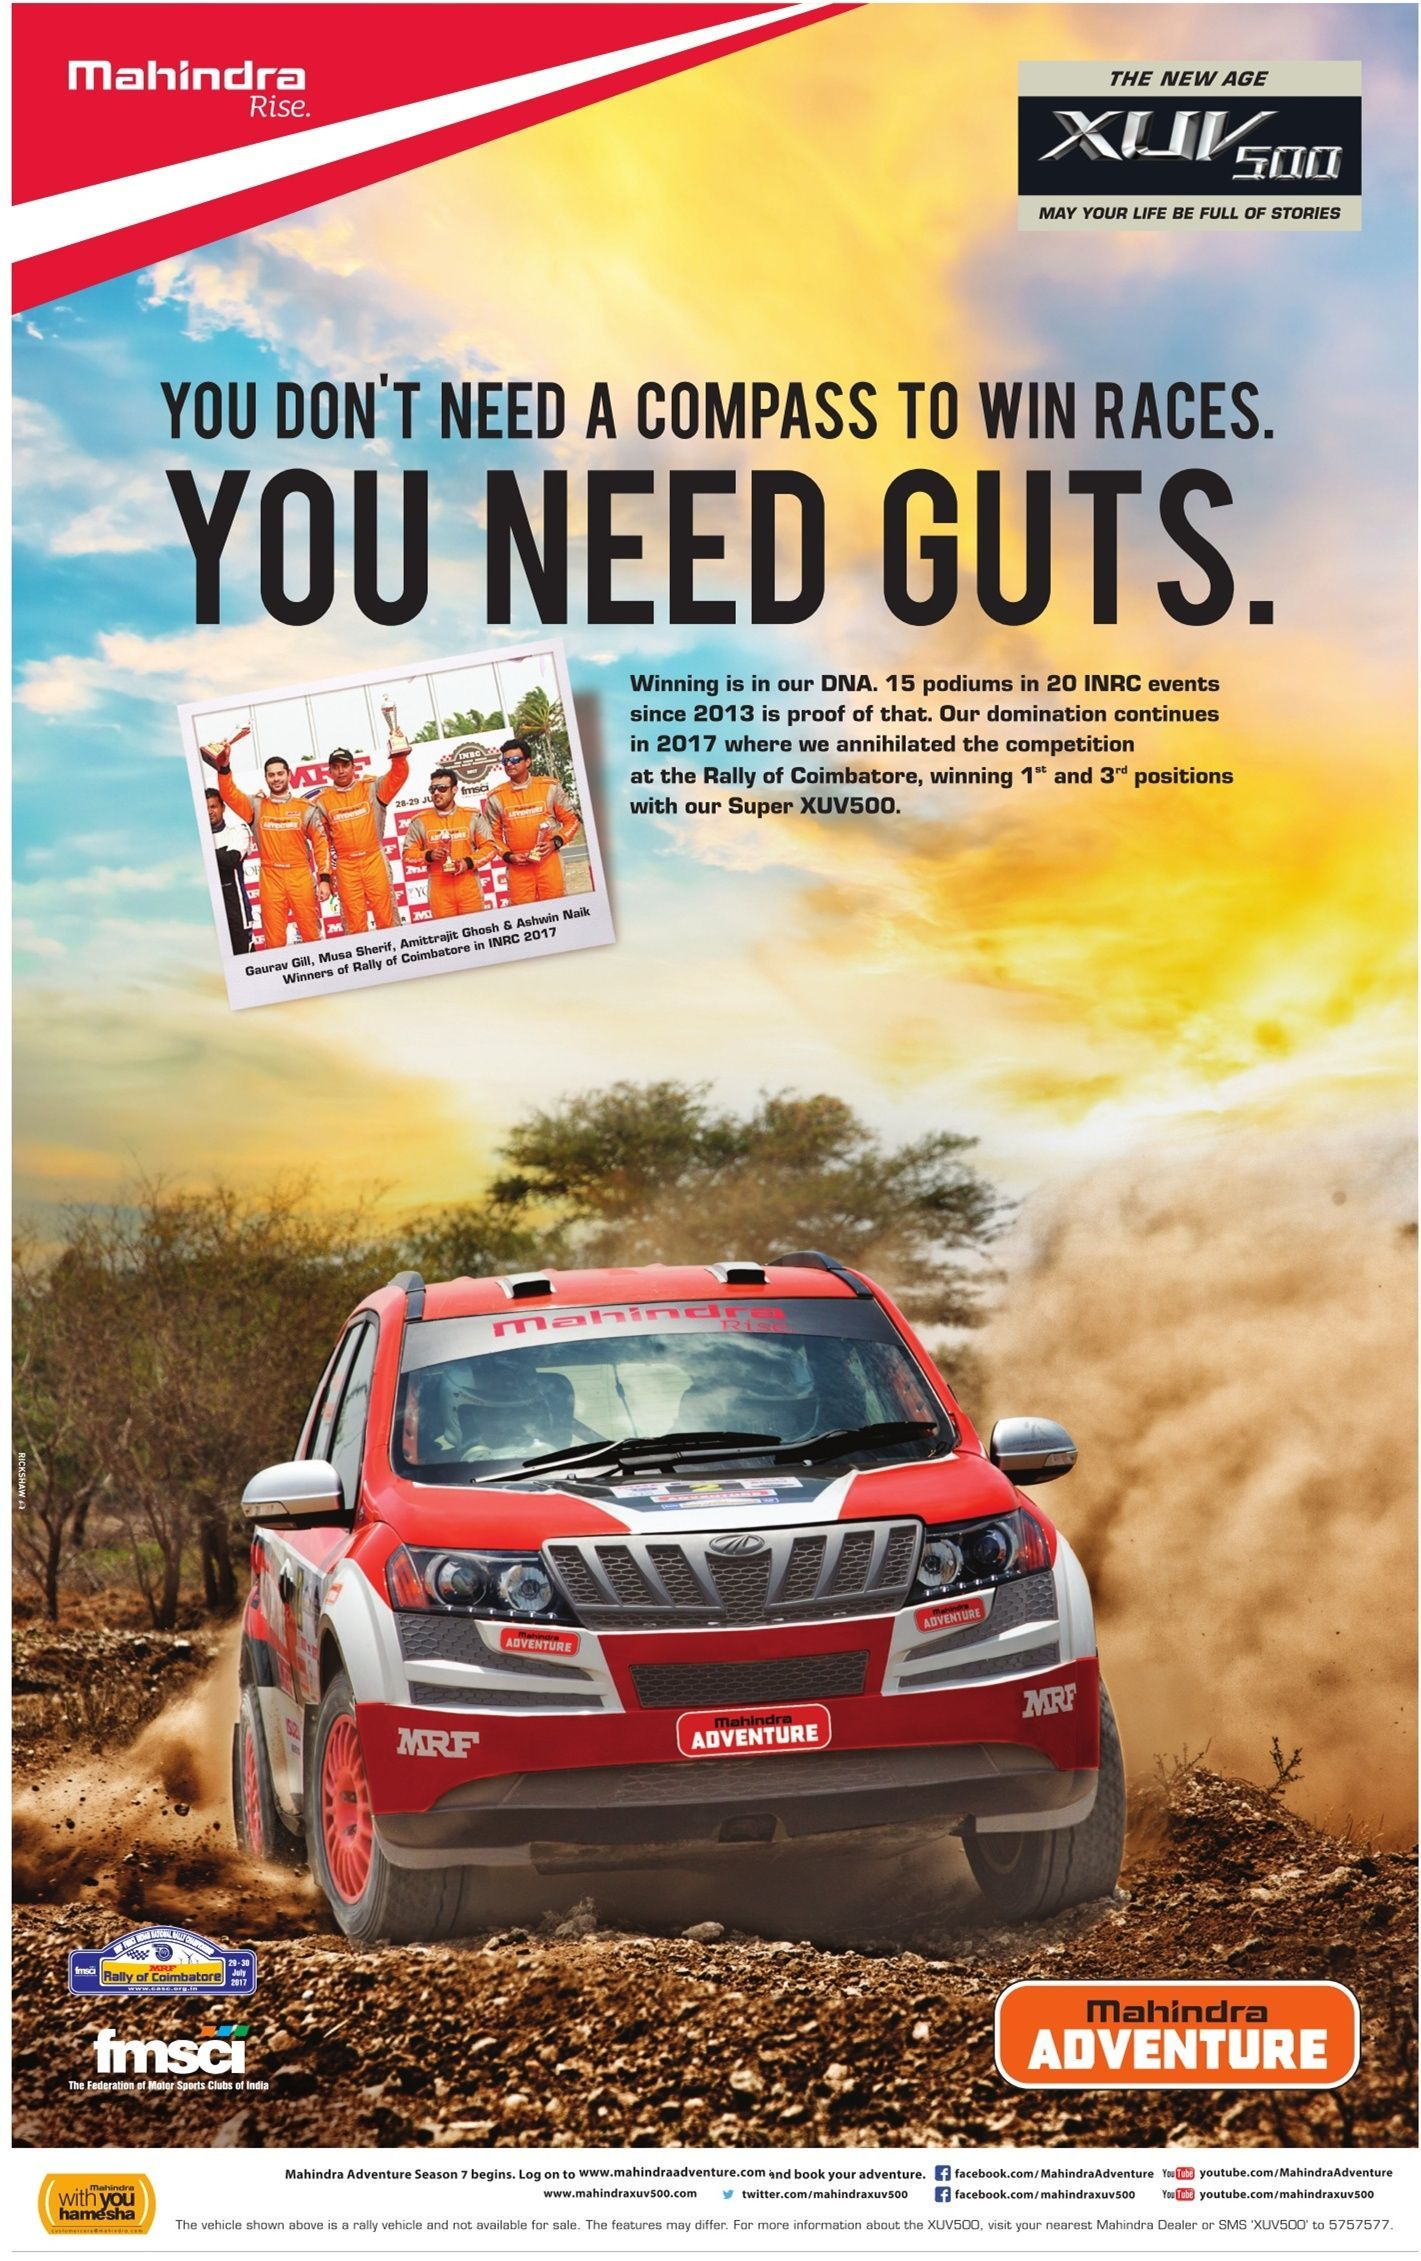 Mahindra Rise Xuv 500 You Dont Need A Compass To Win Races You